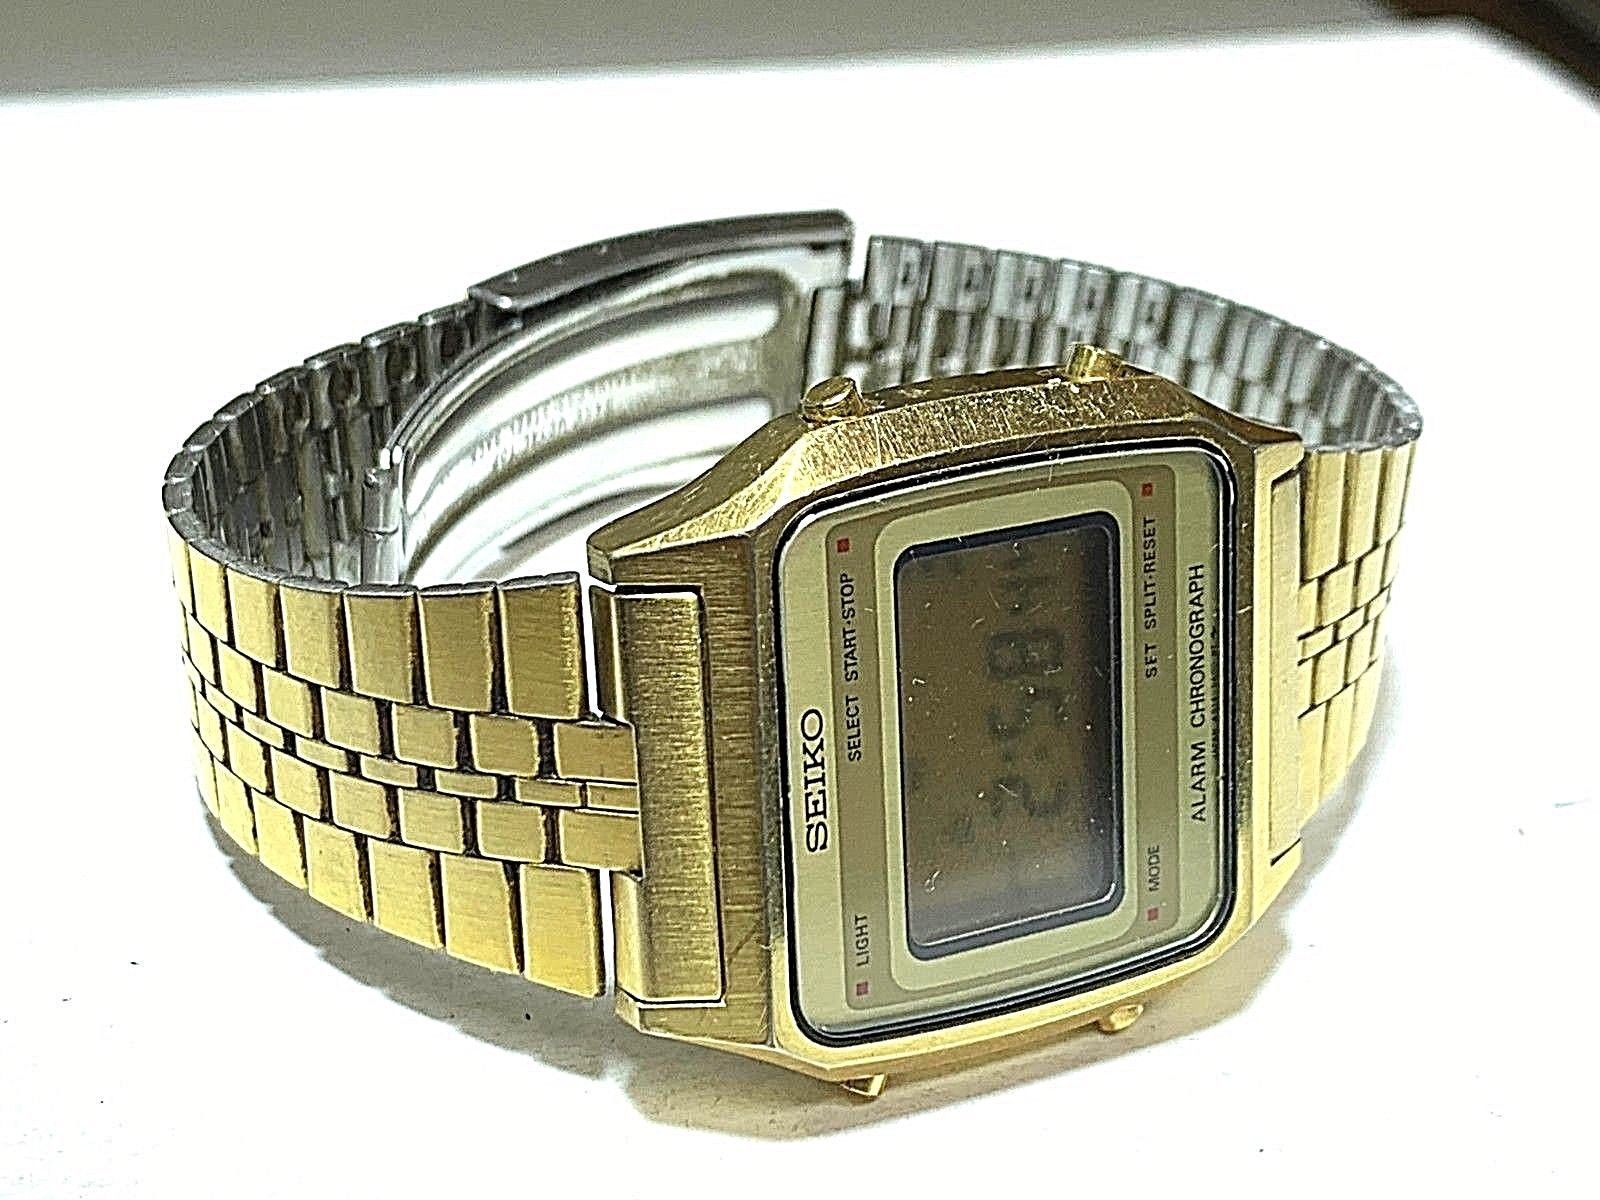 SEIKO VINTAGE DIGITAL A914-5A09 IN GOOD CONDITION FULL FUNCTIONAL GOLD TONE